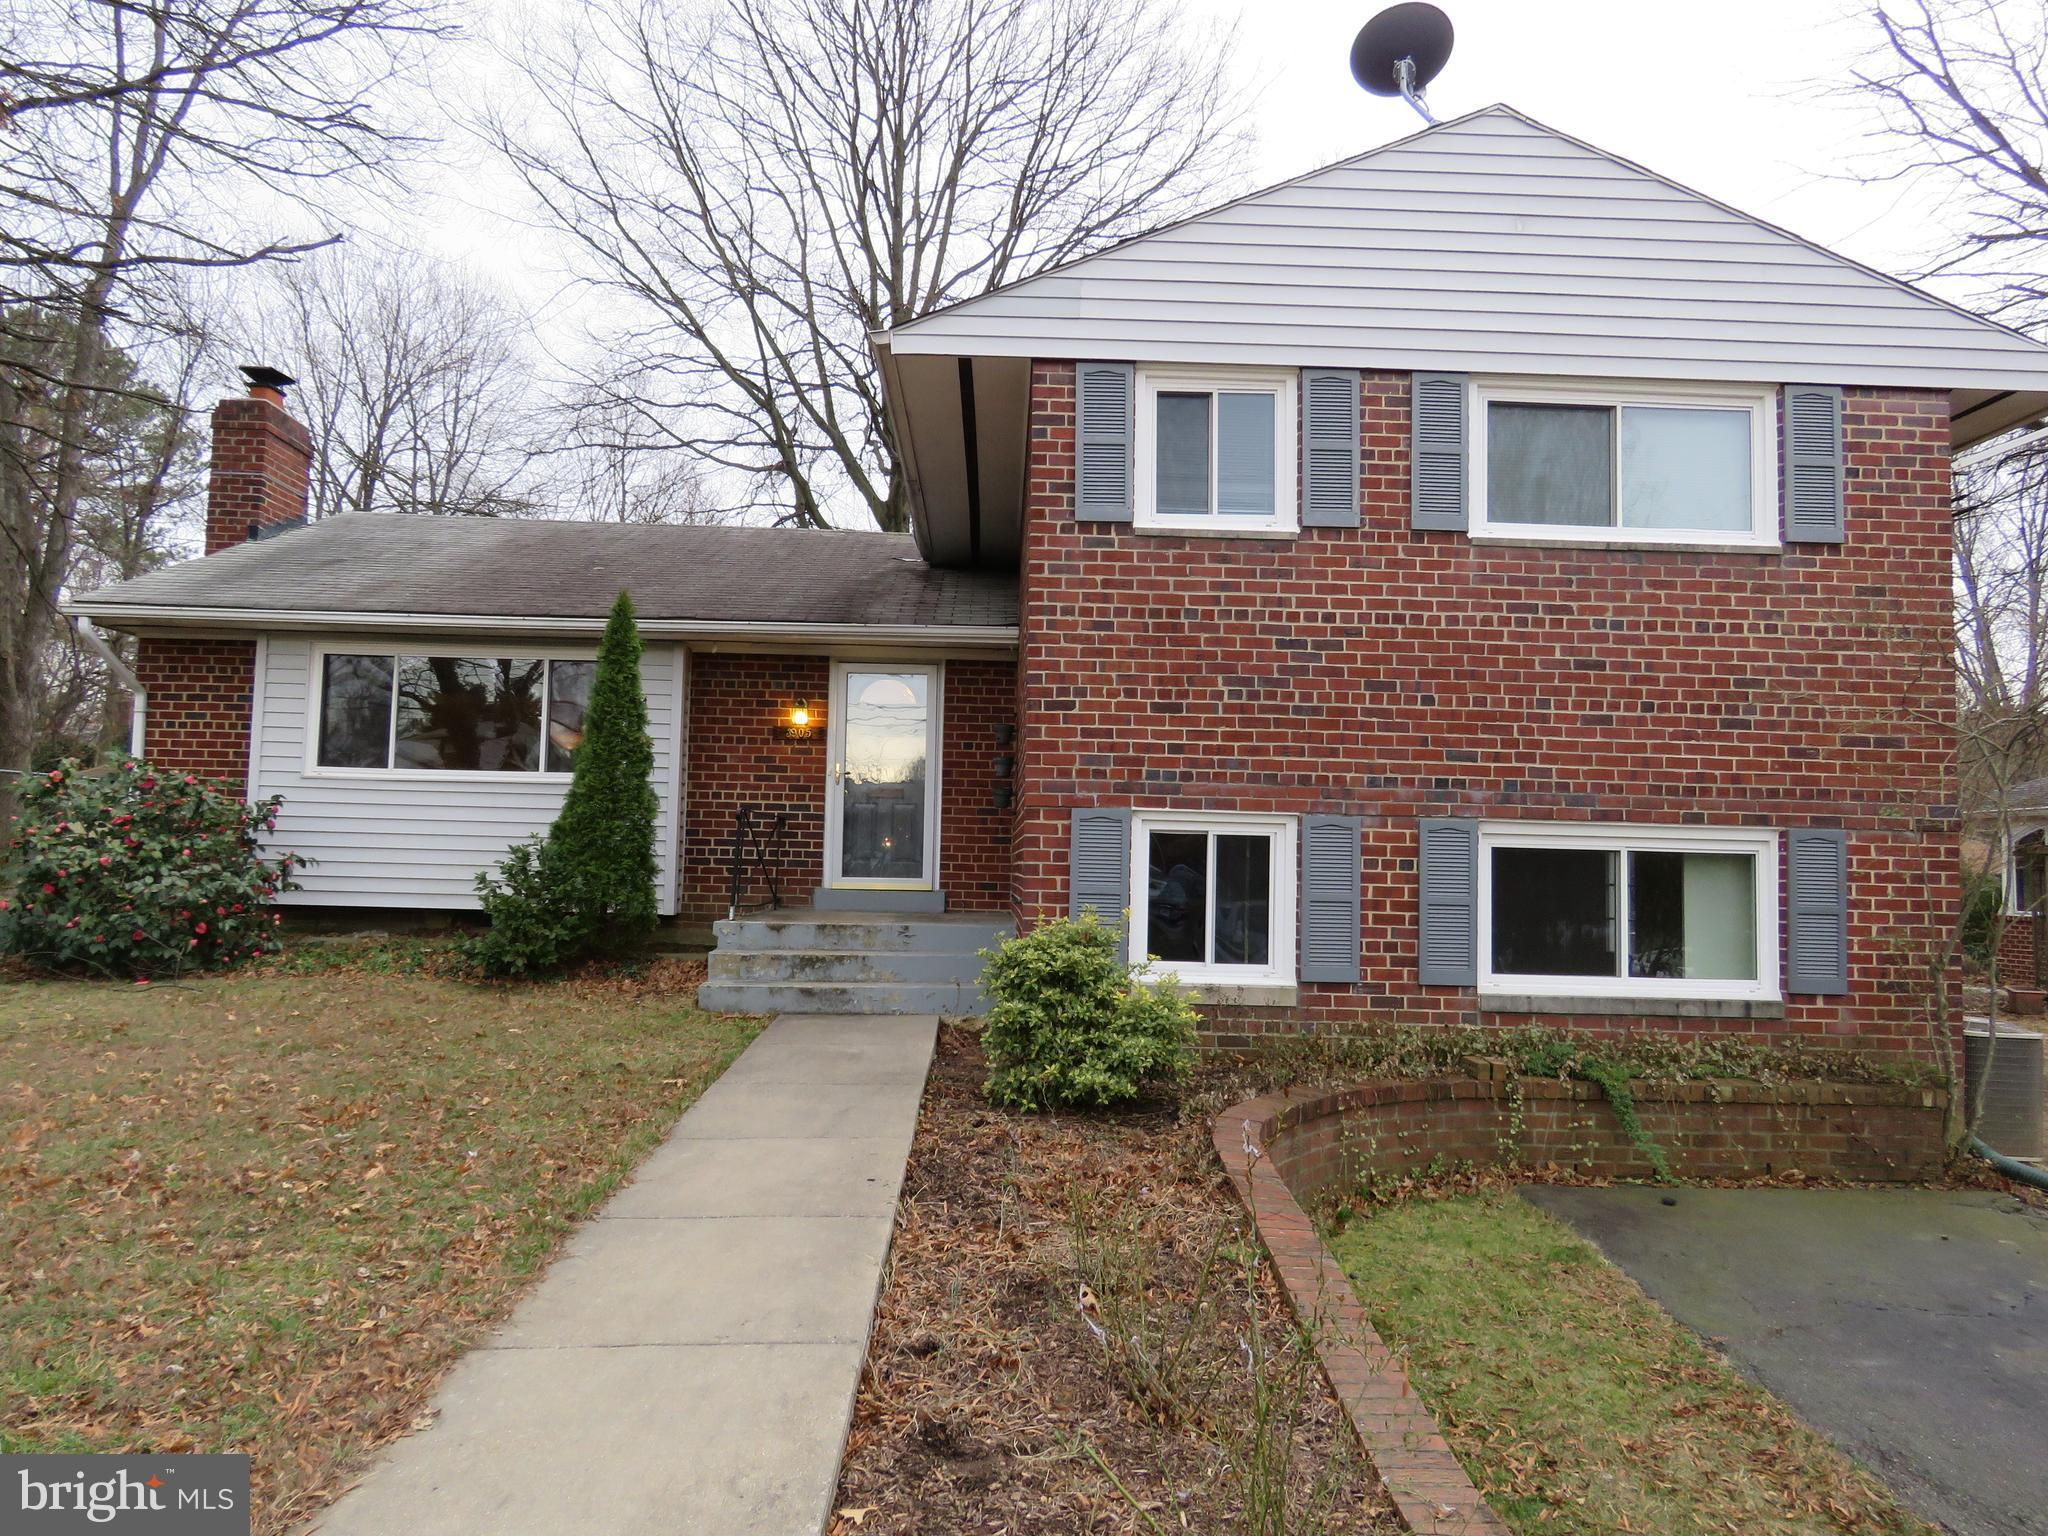 Awesome Single Family home.Wood floors throughout the main floor and upper level. Walk Out lower level with Family Room and 4th Bedroom. Fenced back yard. Pet accepted case by case. Close to Beltway, Metro, and Fort Belvoir. Property is currently oppcupied, cotact the listing to schedule a showing